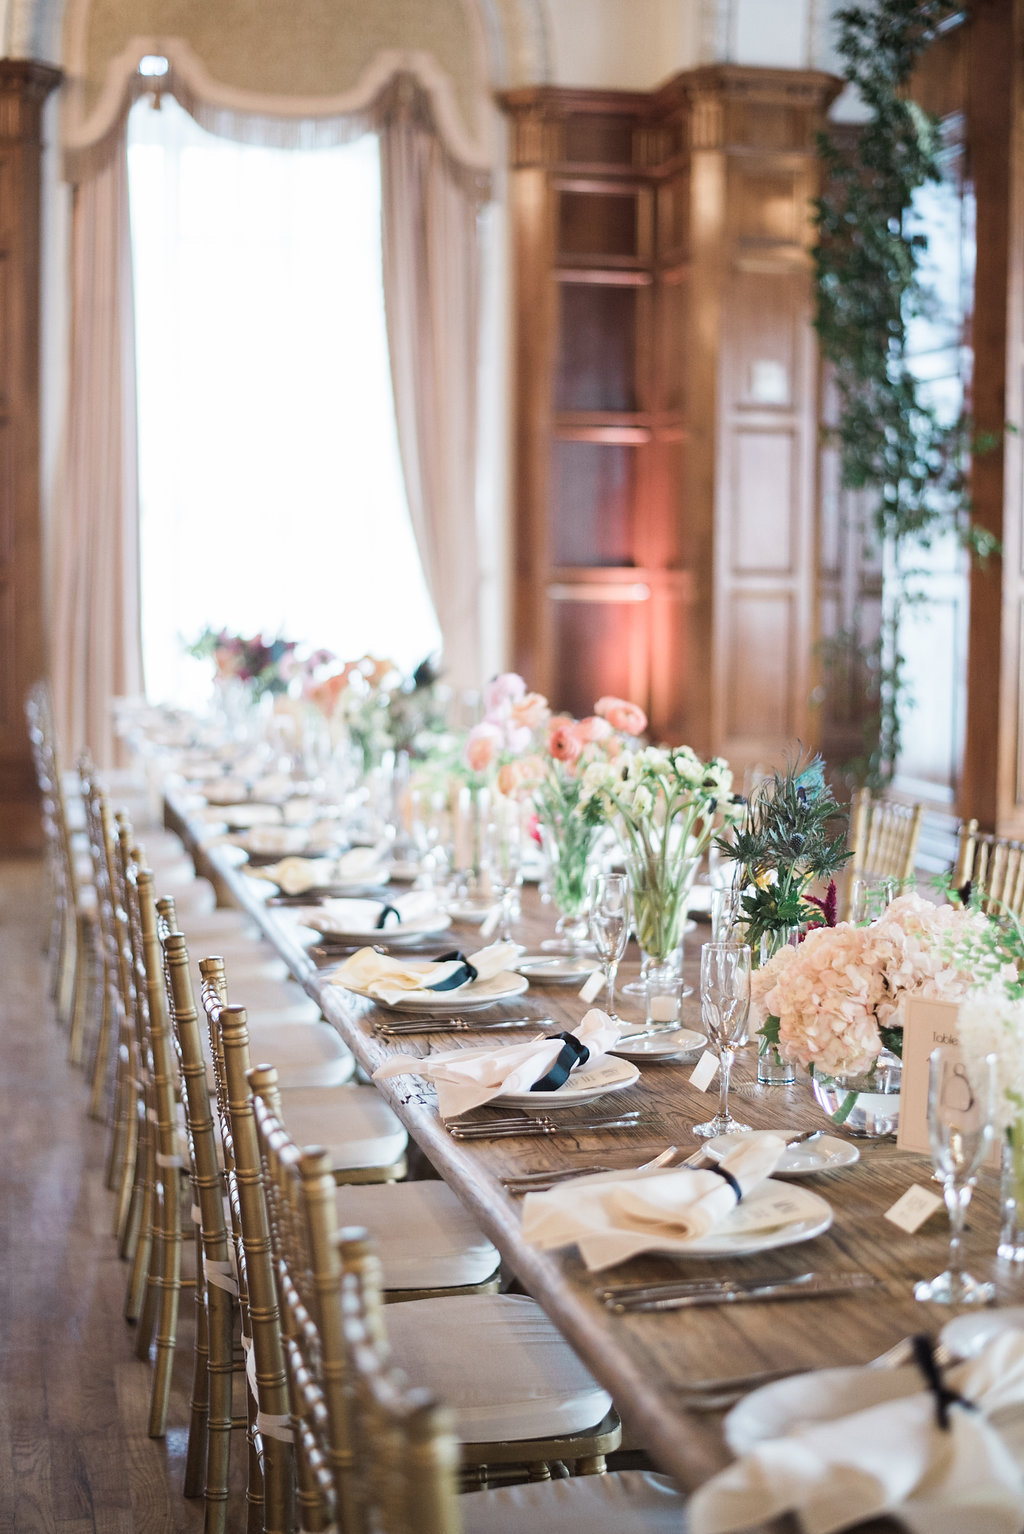 Harmony Creative Studio - Margaux - California Wedding and Event Planner - Photo - 14